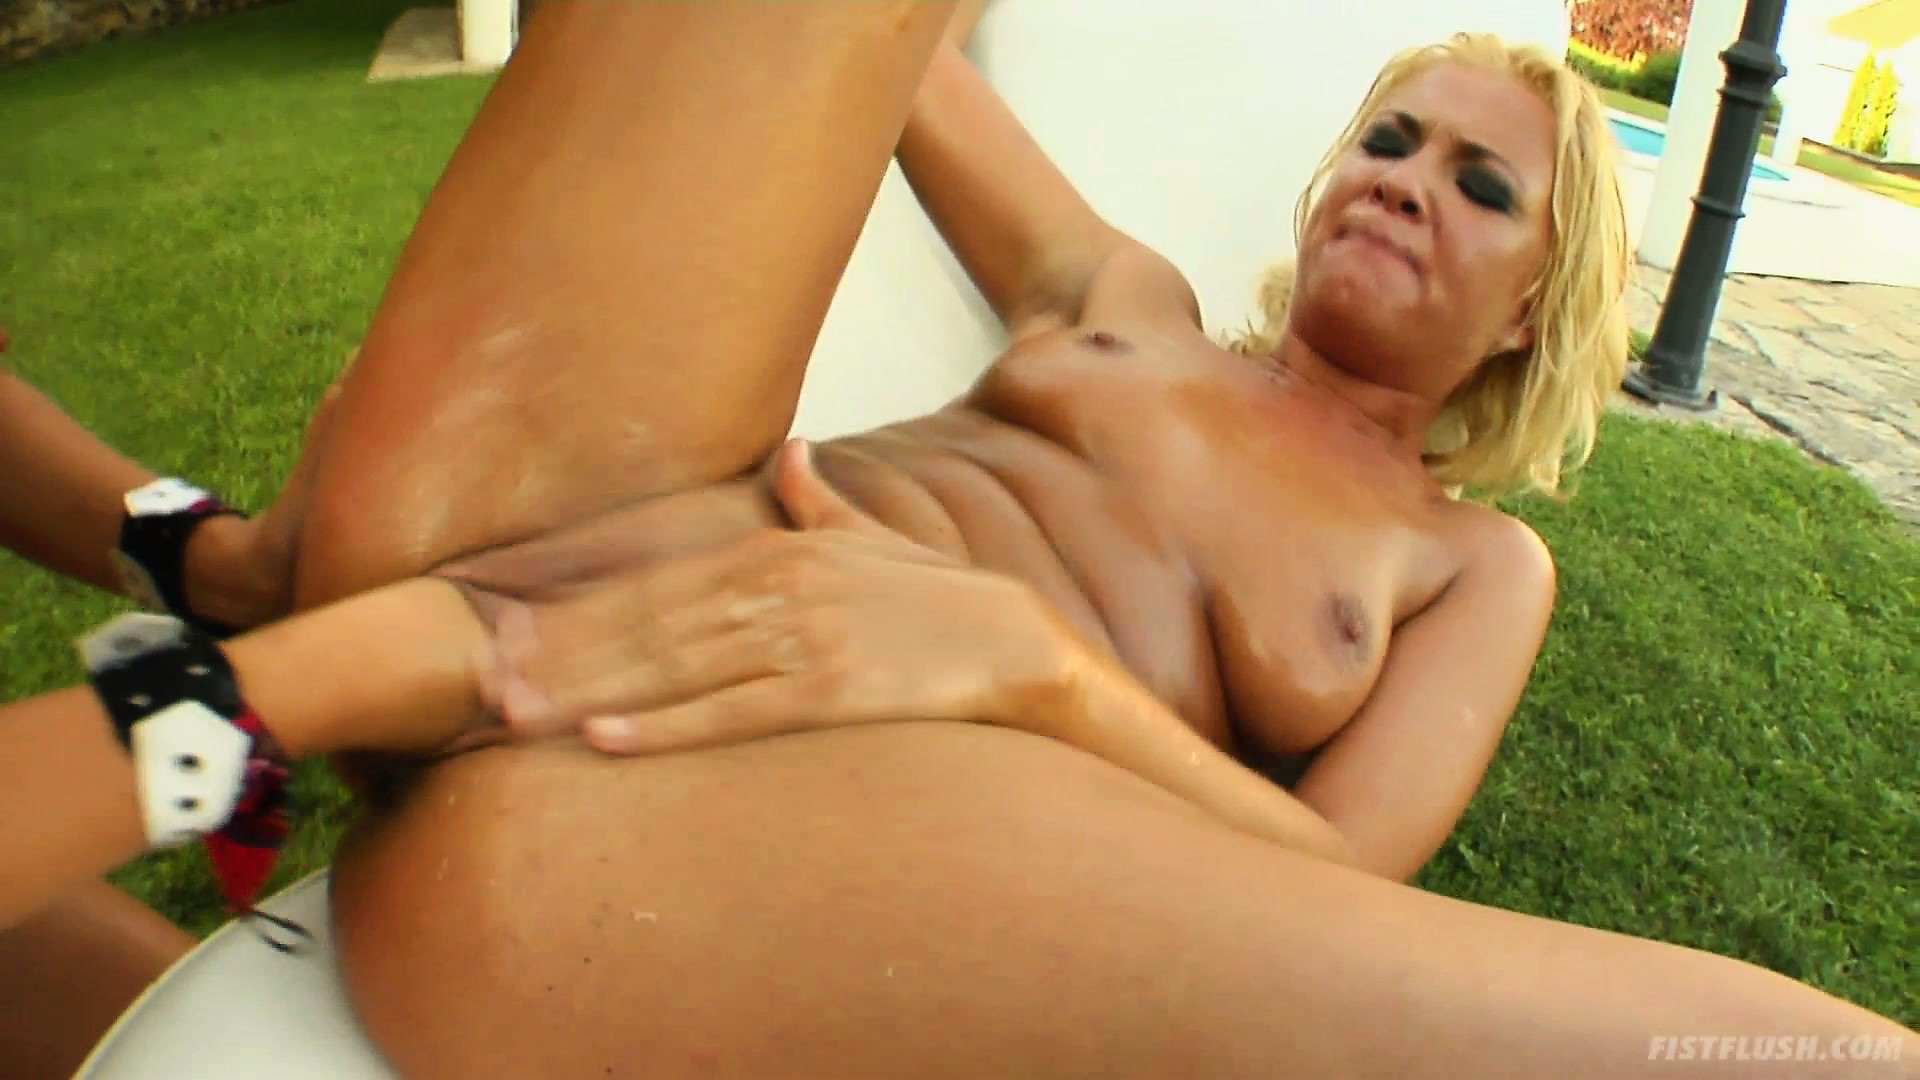 Porno Video of Blondes Mel And Angelic Takes Turns Fisting In The Backyard By The Pool